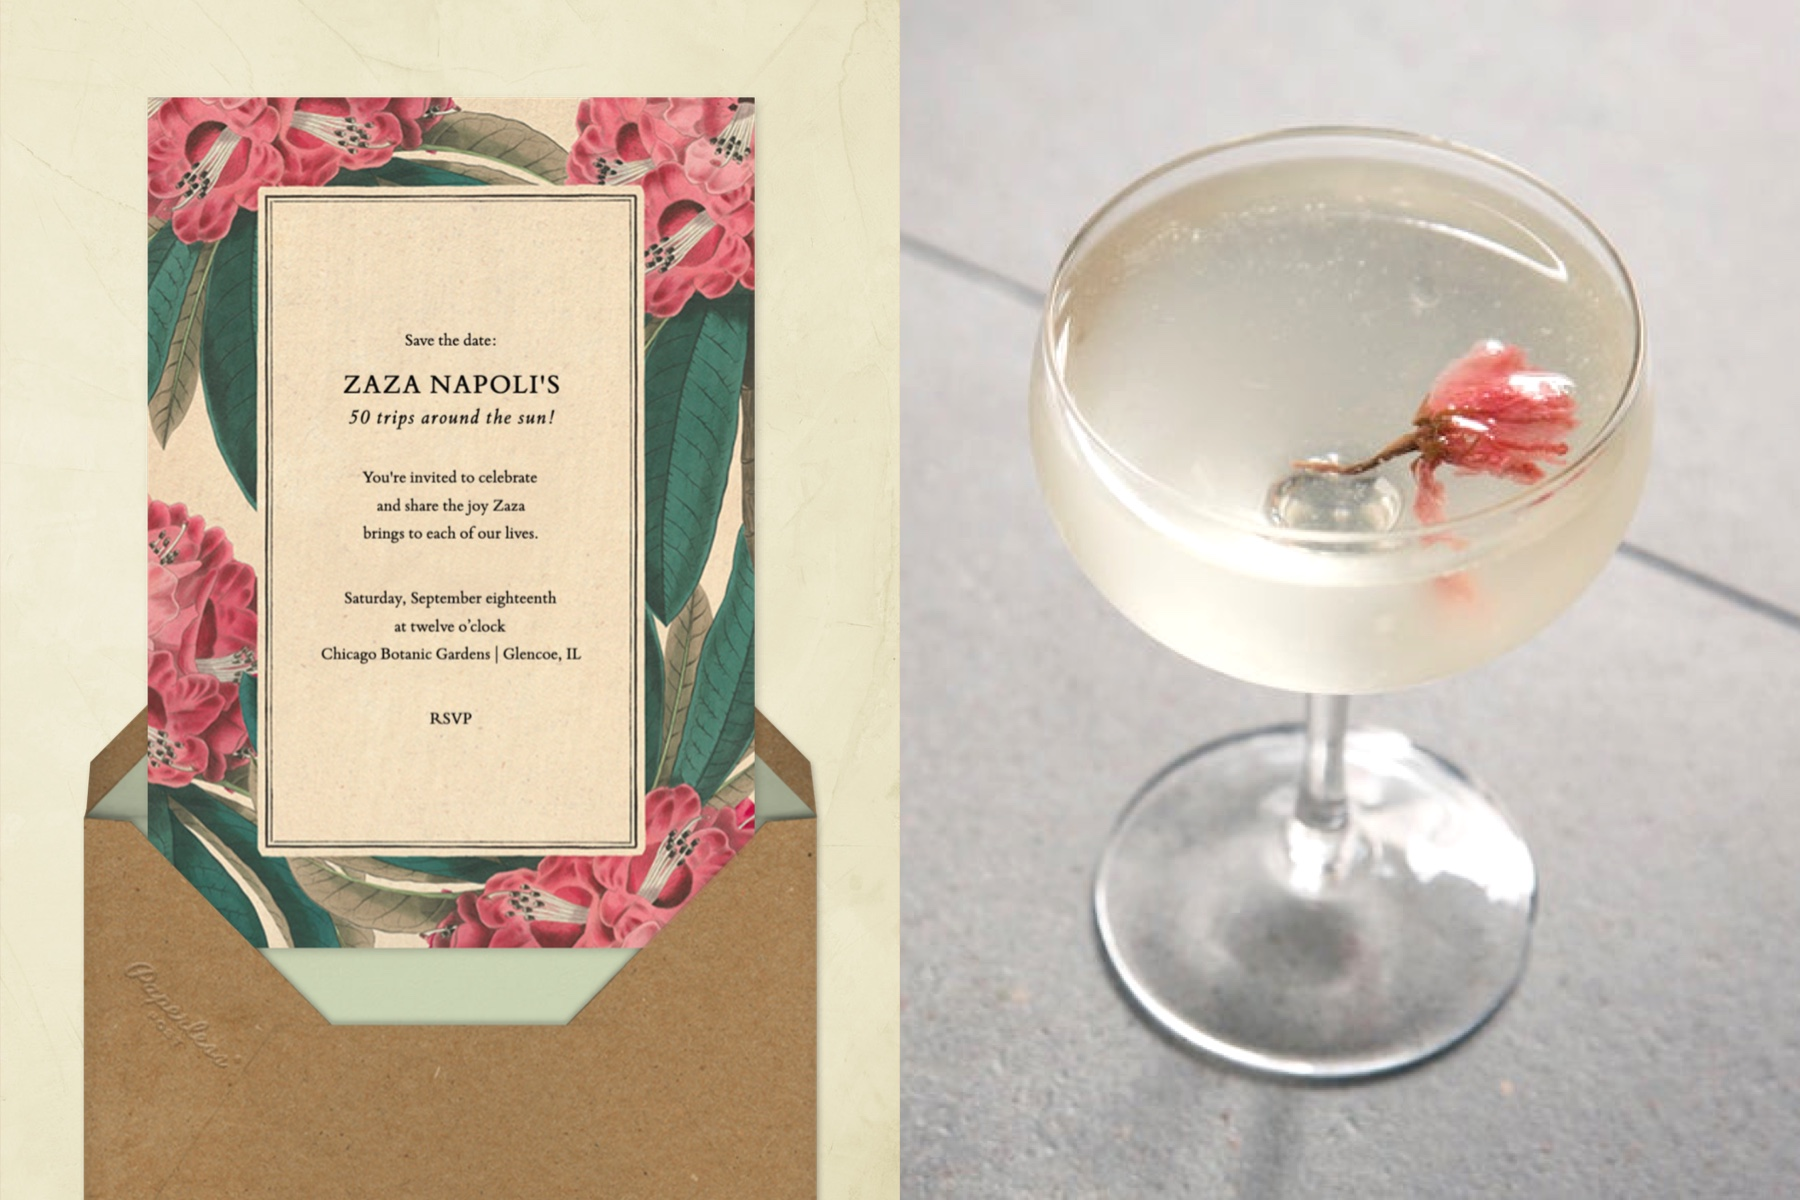 """Left: """"Azalea Grove"""" invitation by John Derian for Paperless Post featuring illustrations of azaleas. The card is featured on a cream background. 